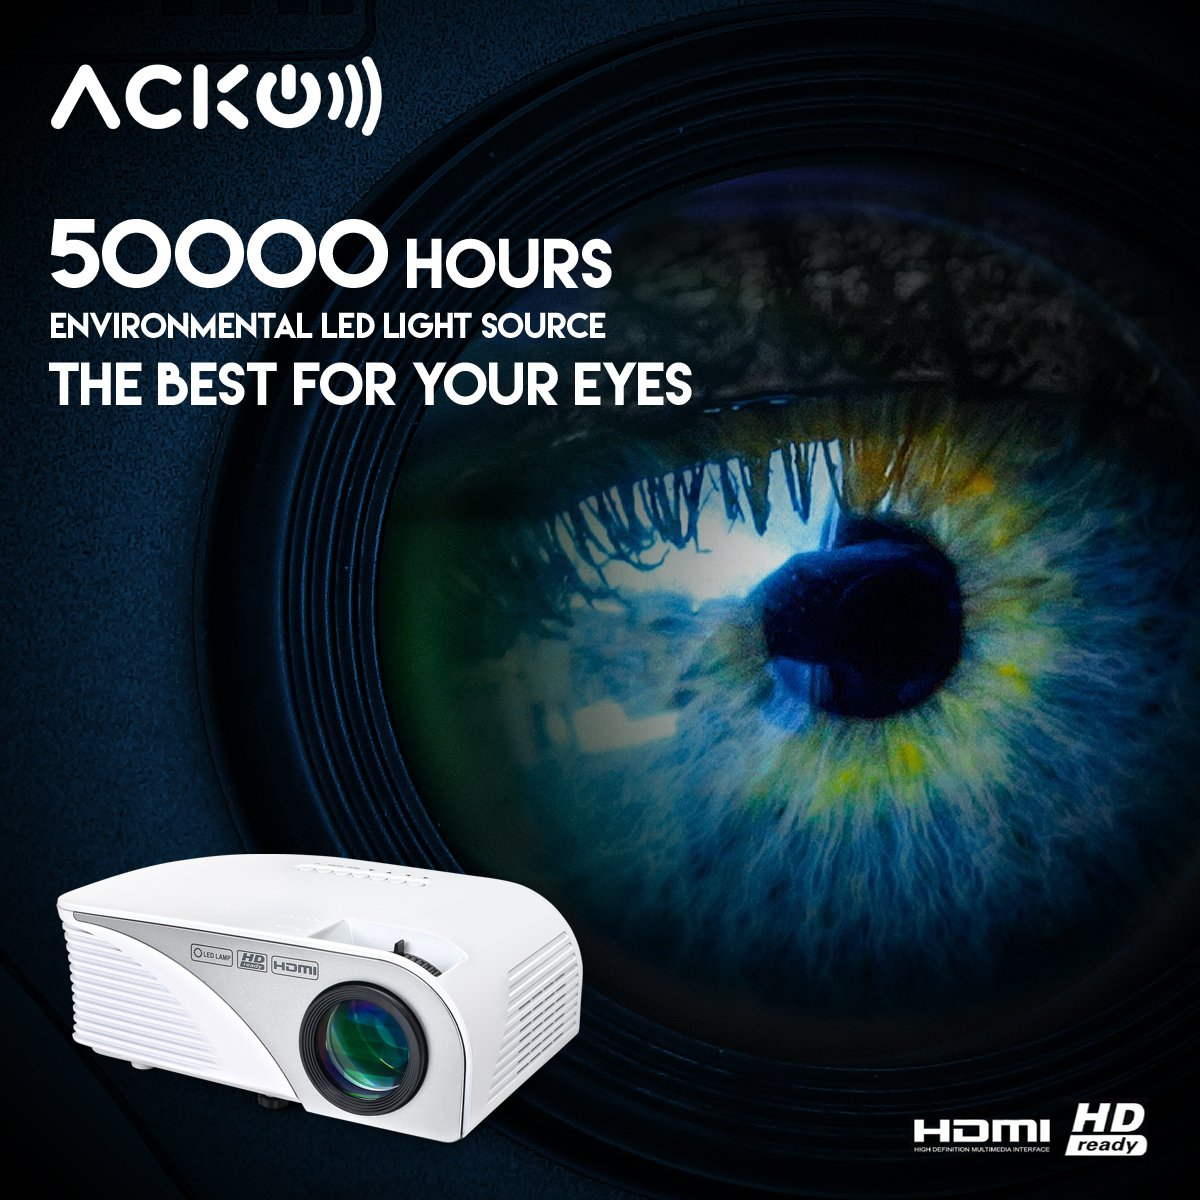 Acko Portable Mini HD LED Video Projector Office Home Theater 1200 LM Multimedia Outdoor 20''-150'' HDMI VGA USB AV SD Audio 1080P Smart Phone Tablet PC Computers Laptops White Warranty Included by EpandaHouse (Image #6)